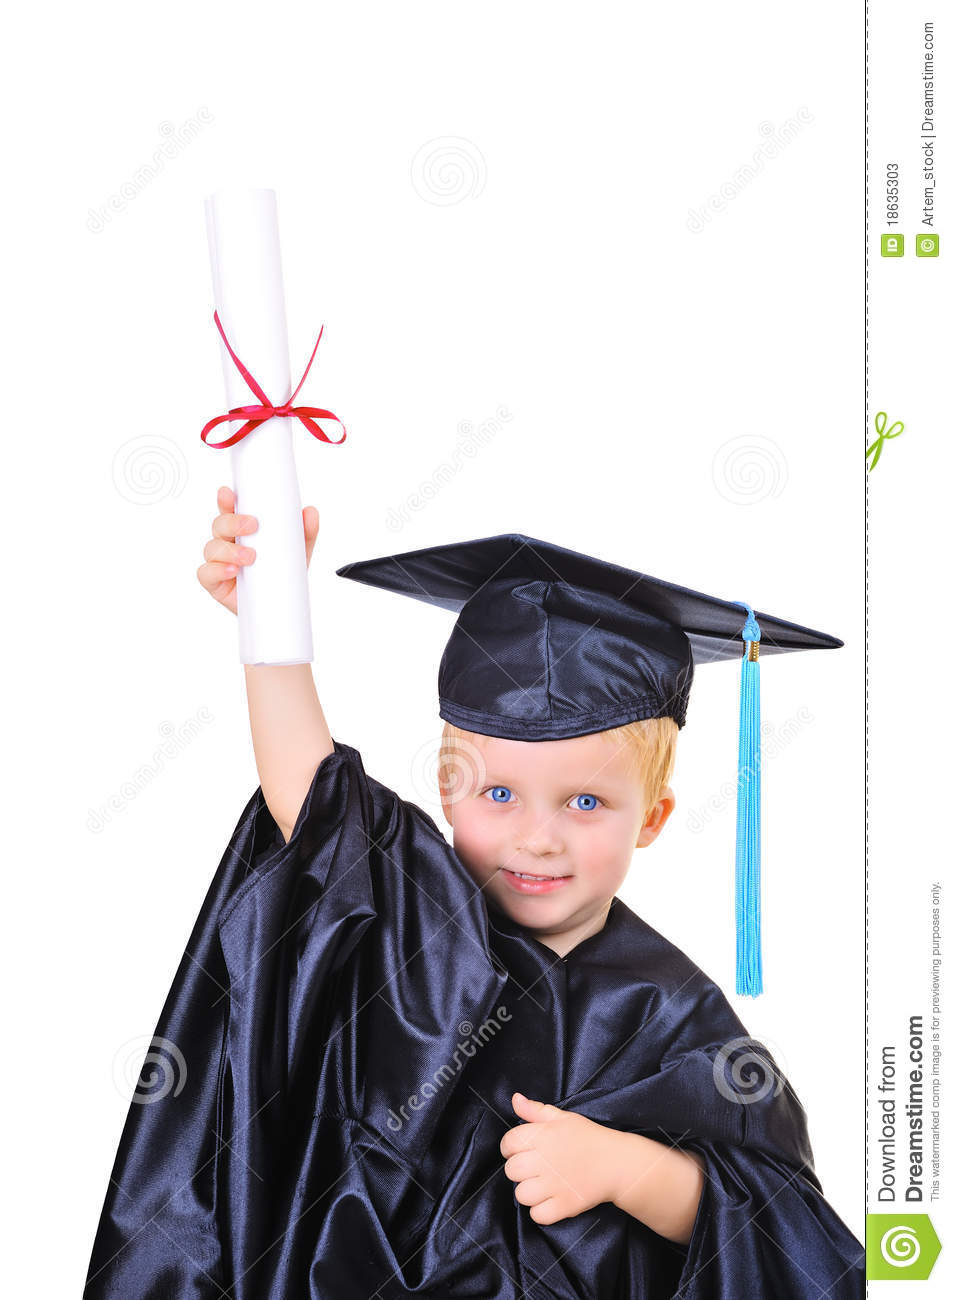 Young Boy In Graduation Dress Stock Image - Image 18635303